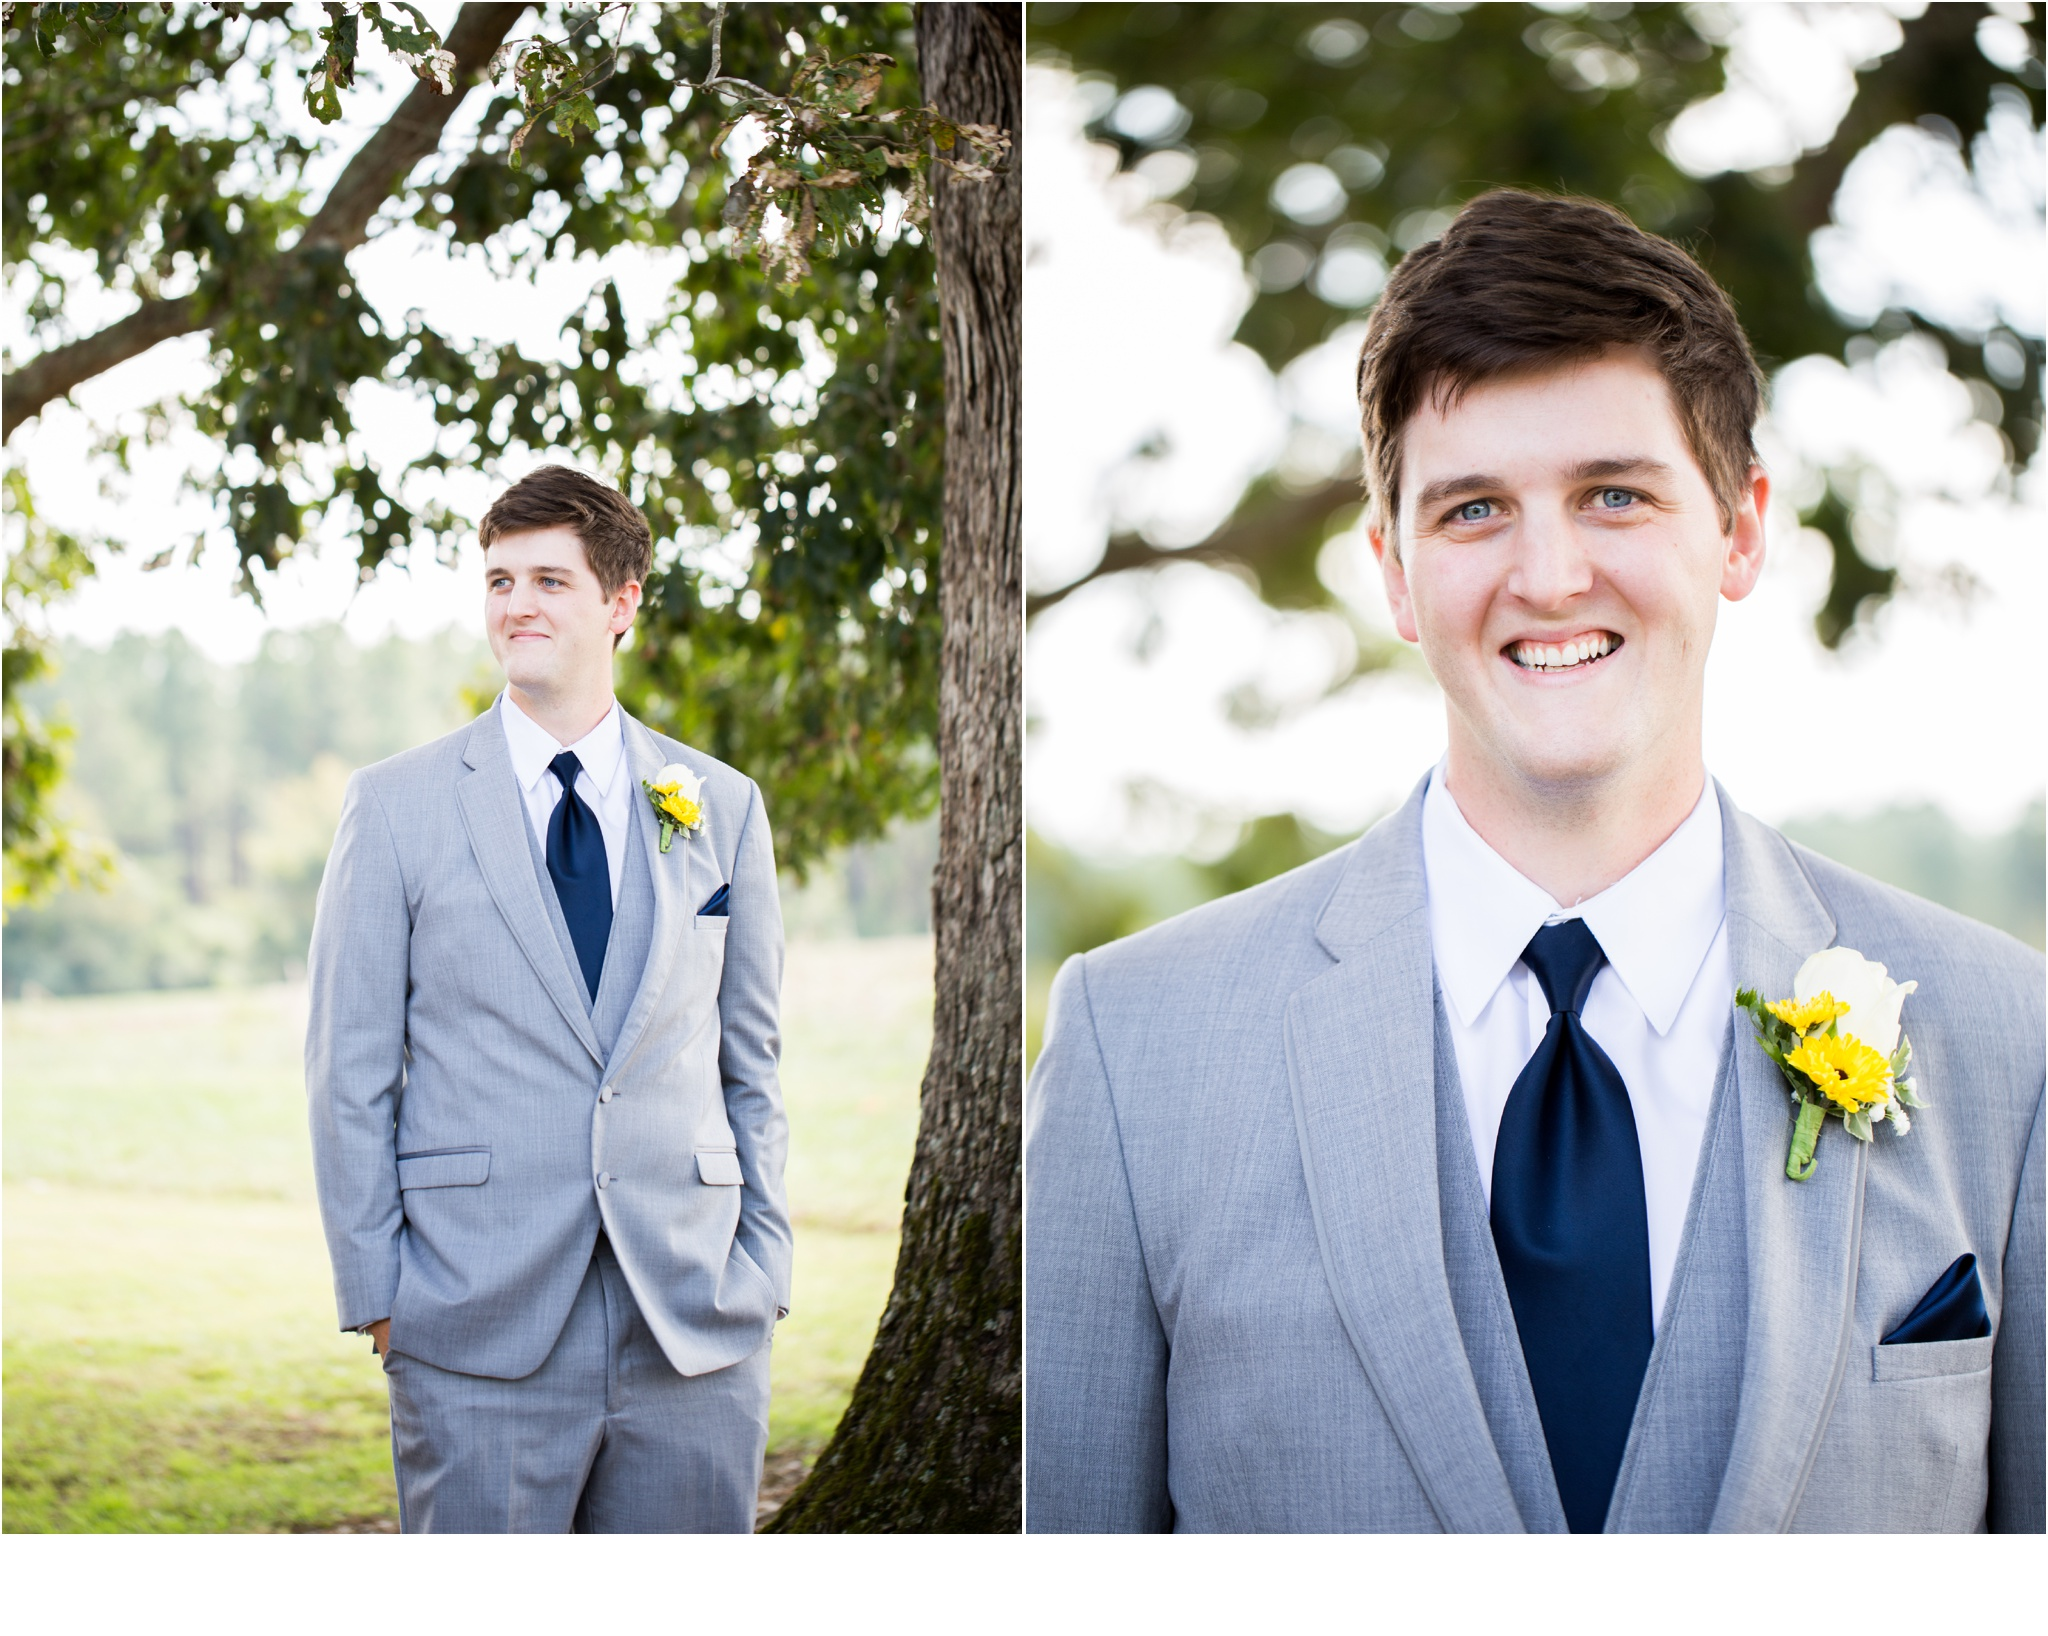 Rainey_Gregg_Photography_St._Simons_Island_Georgia_California_Wedding_Portrait_Photography_0294.jpg